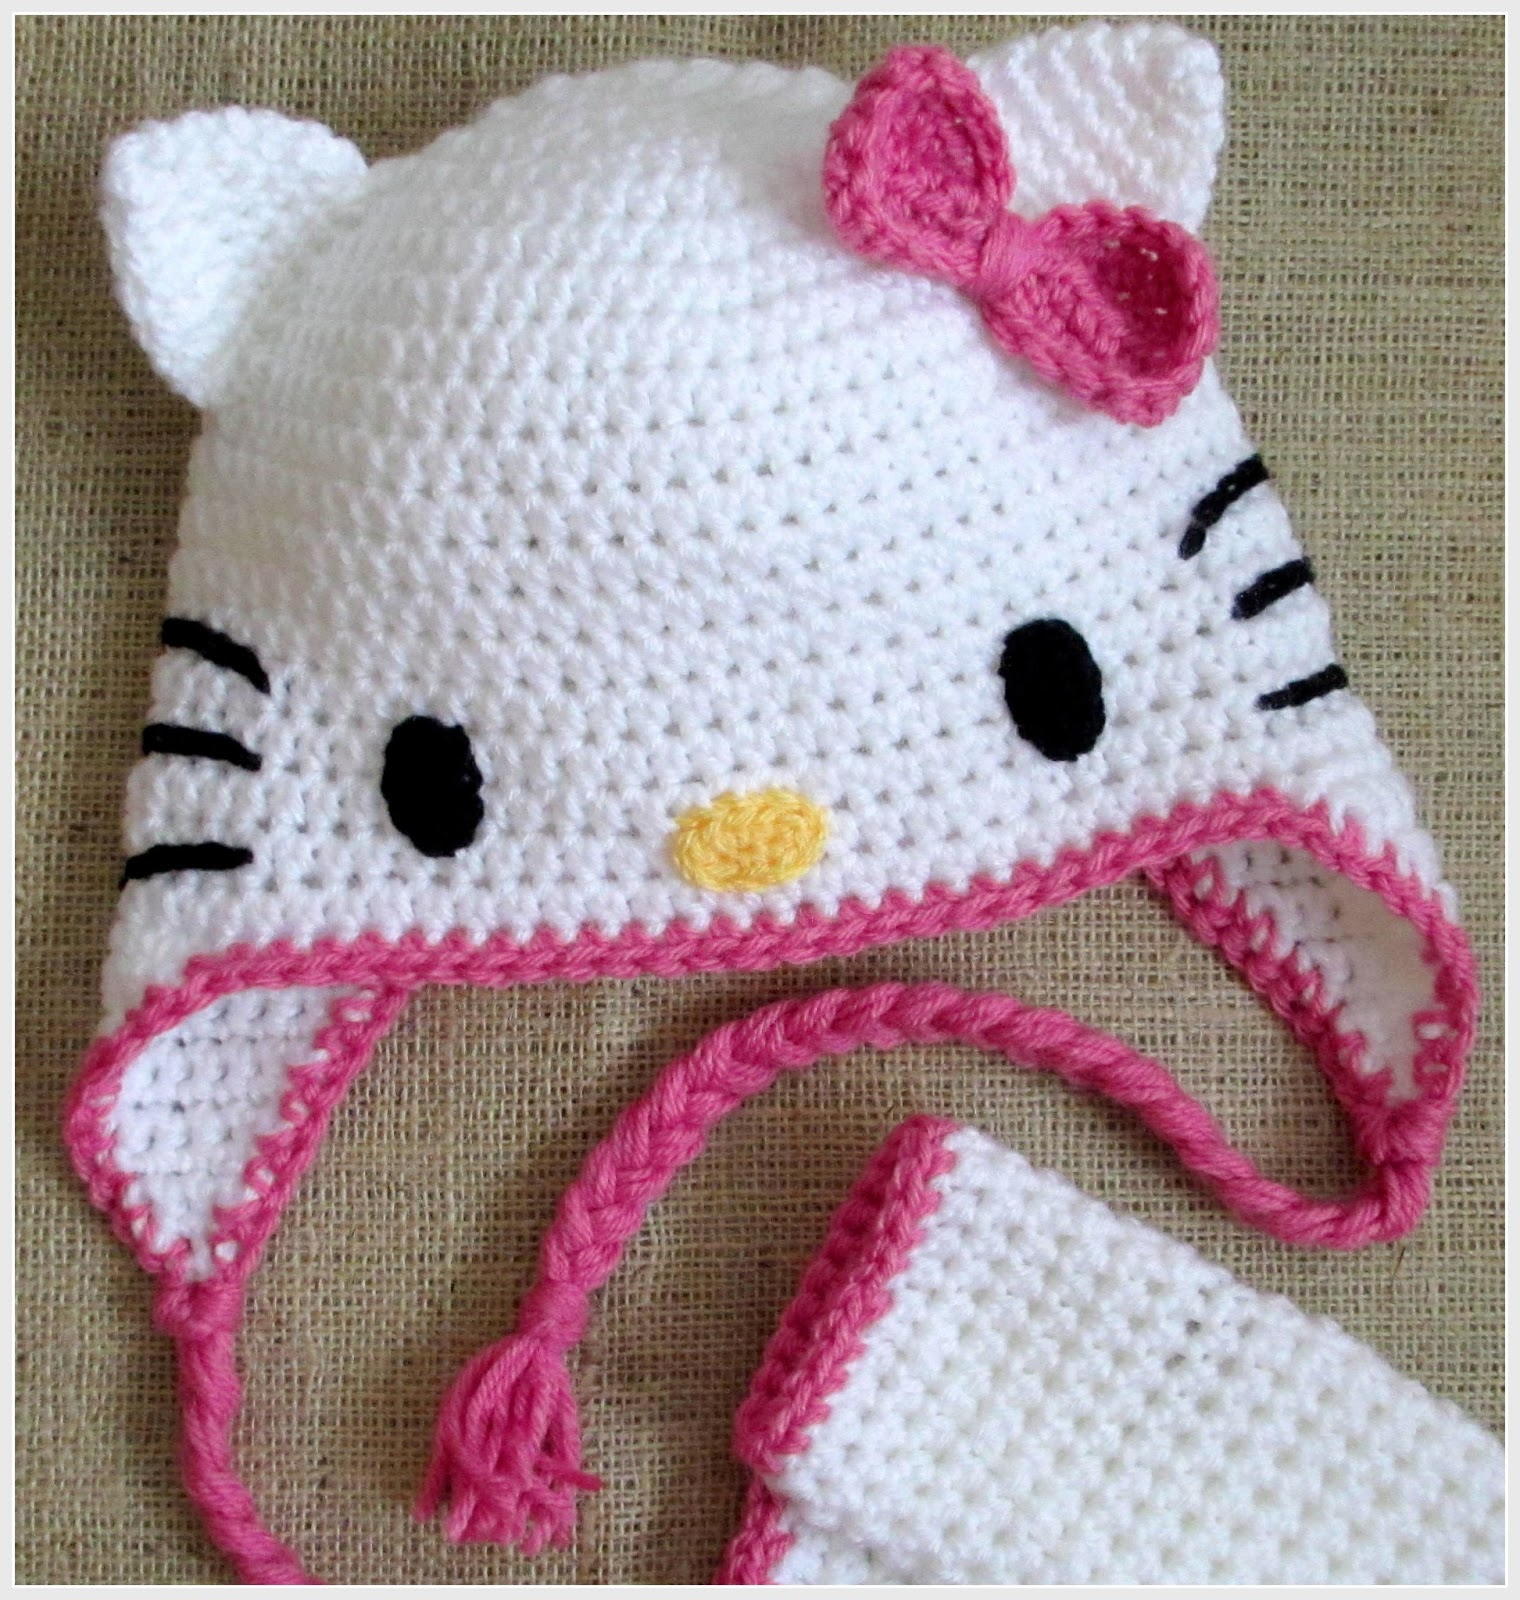 1000+ images about Crochet hat patterns on Pinterest Crochet hats, Hat patt...